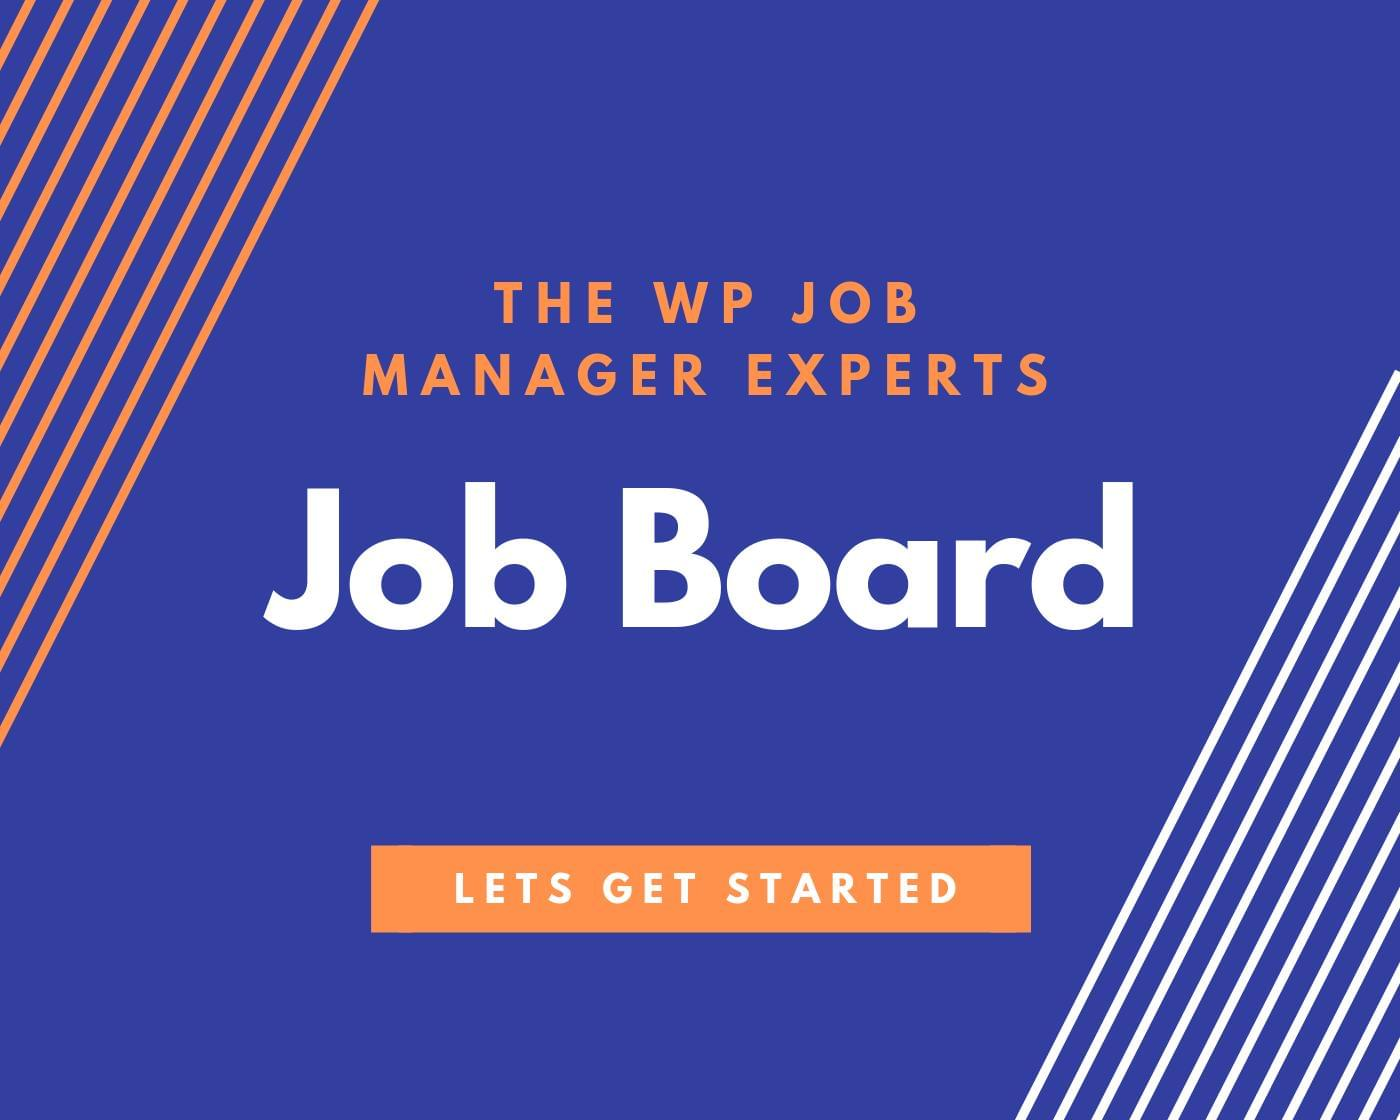 WP Job Manager - Job Board WordPress Plugin Customization by BloomPixel - 115369